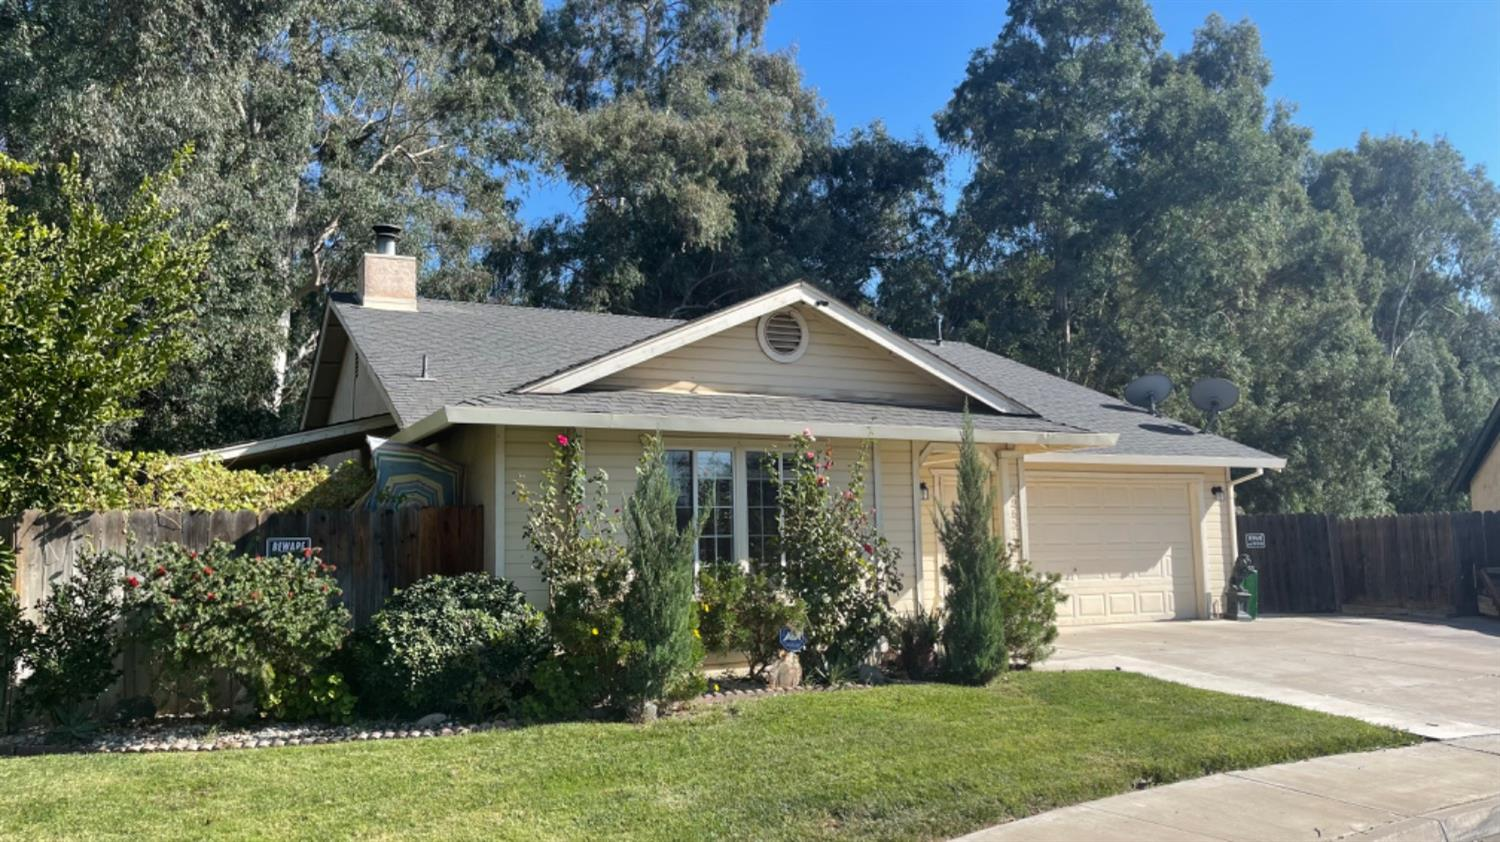 If gardening is your game this home has your name.This home is super clean located near the schools